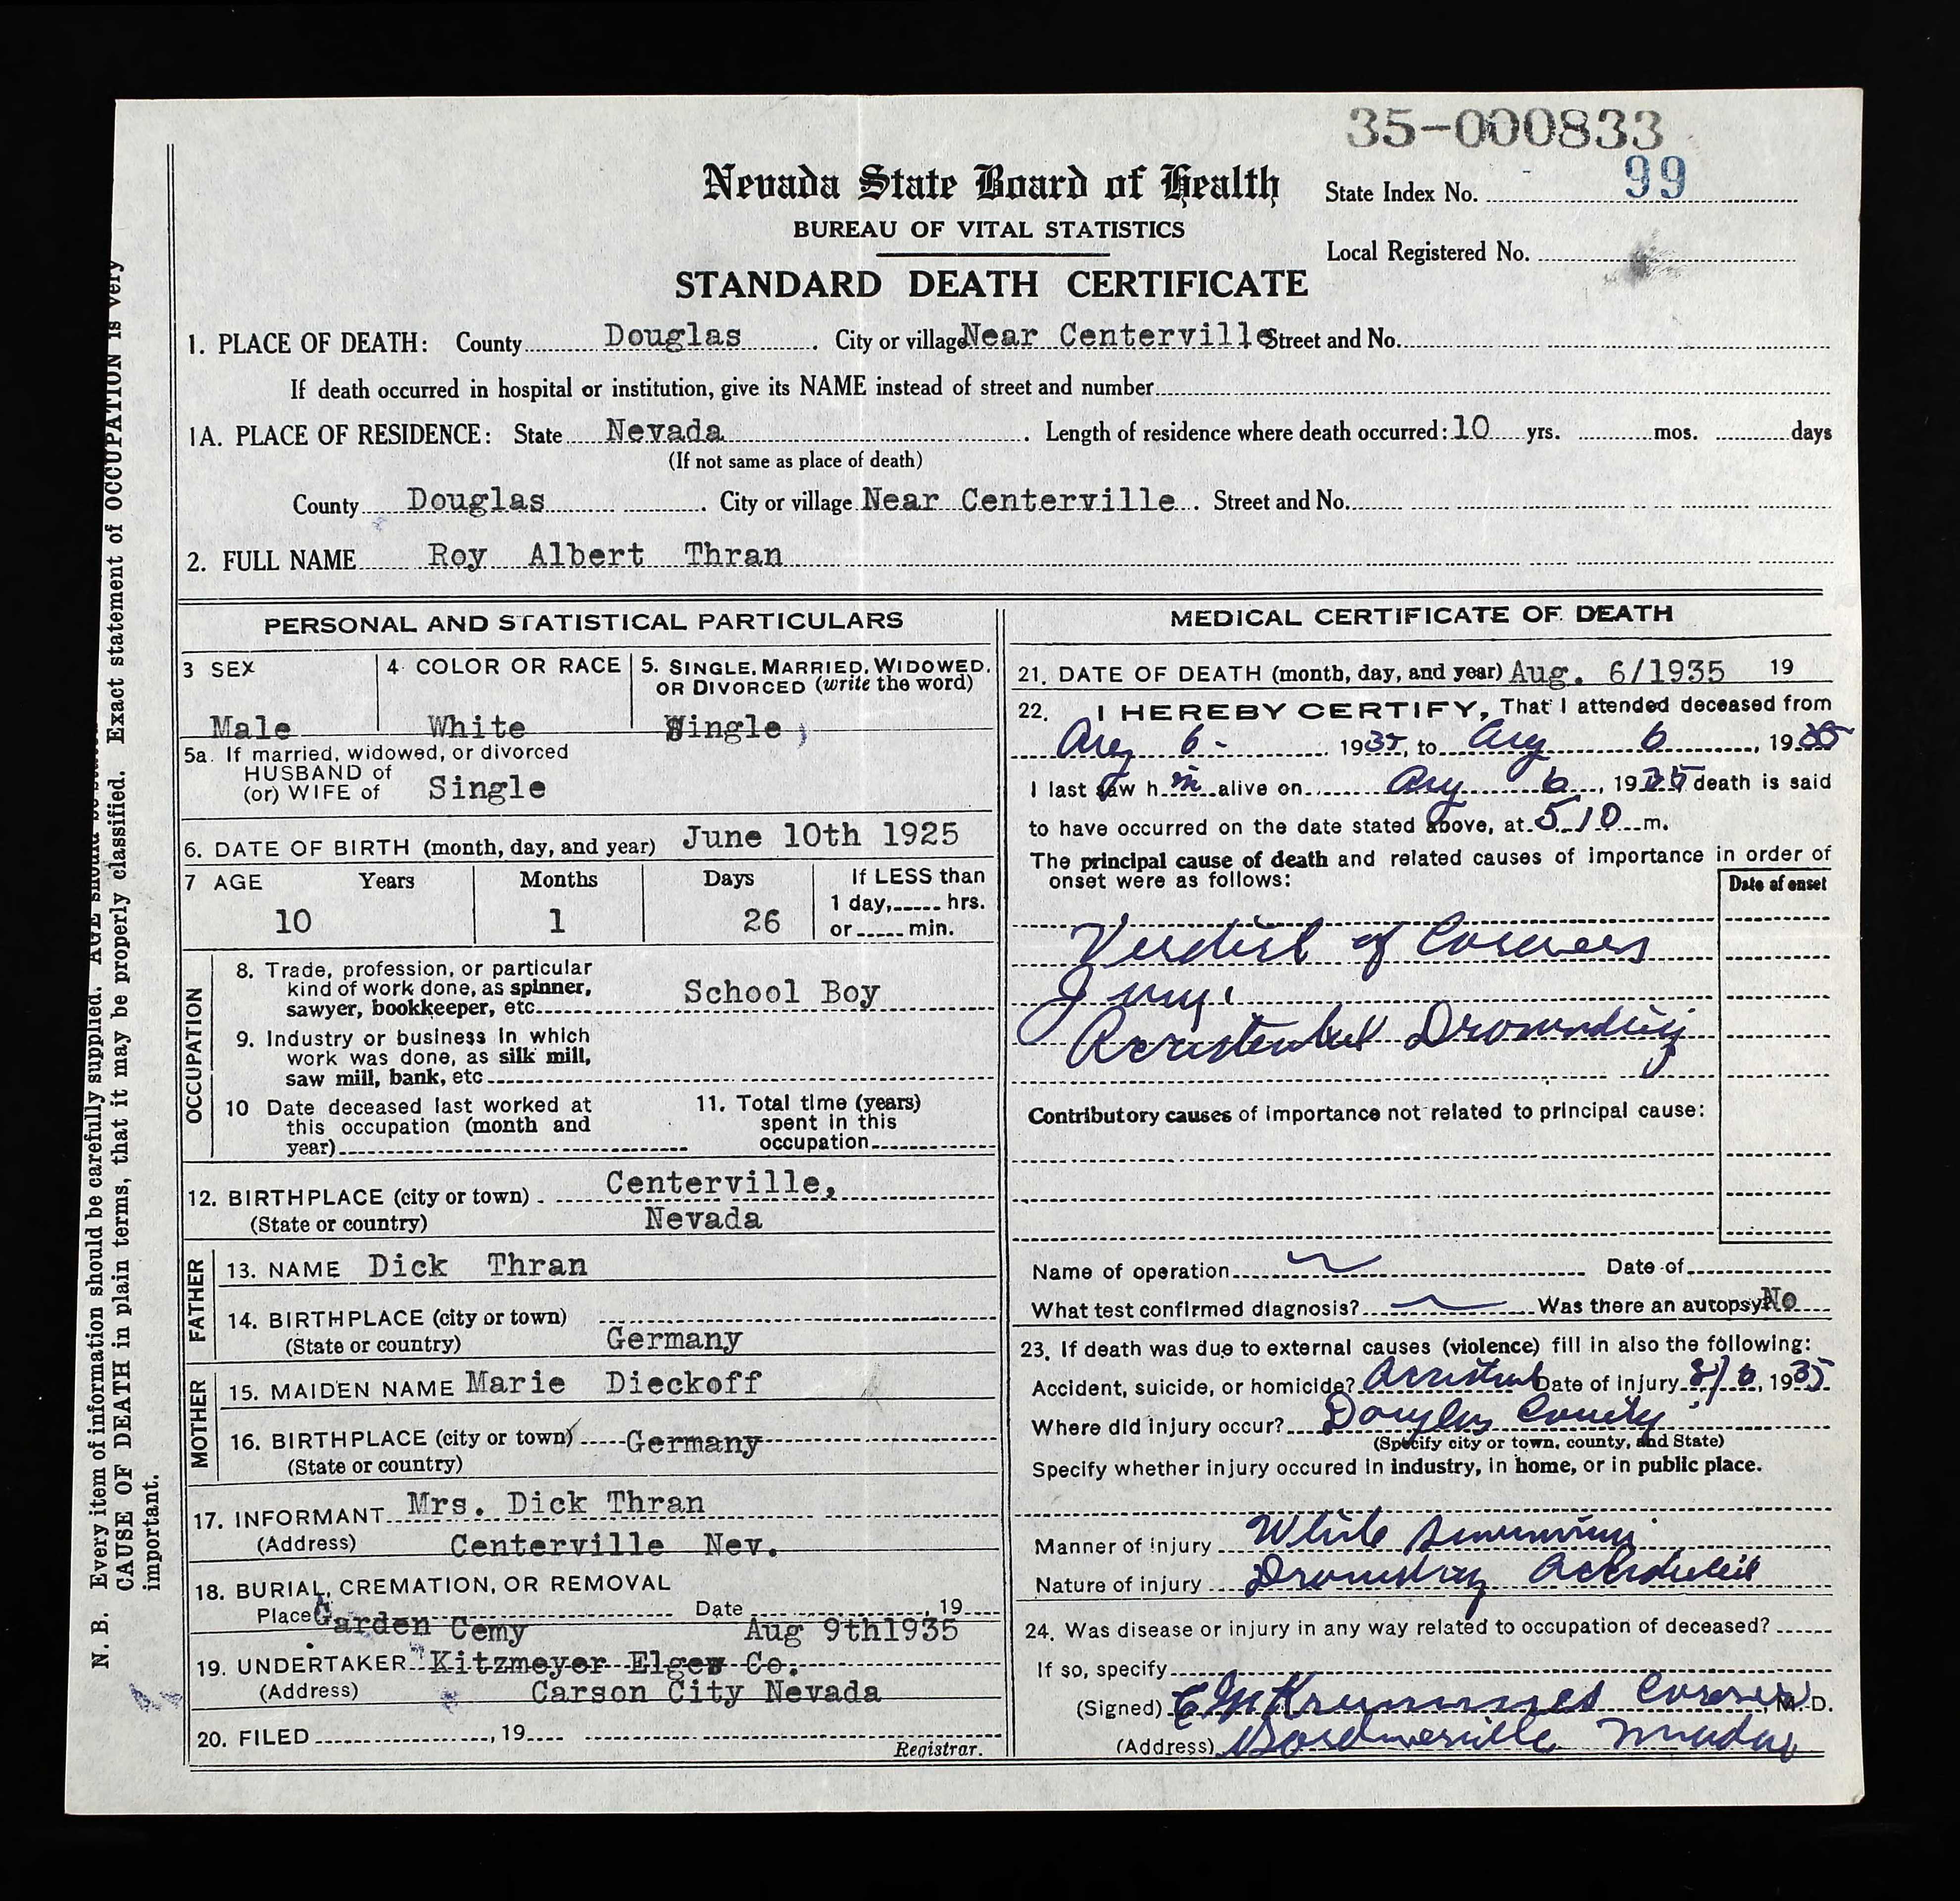 roy thran death certificate